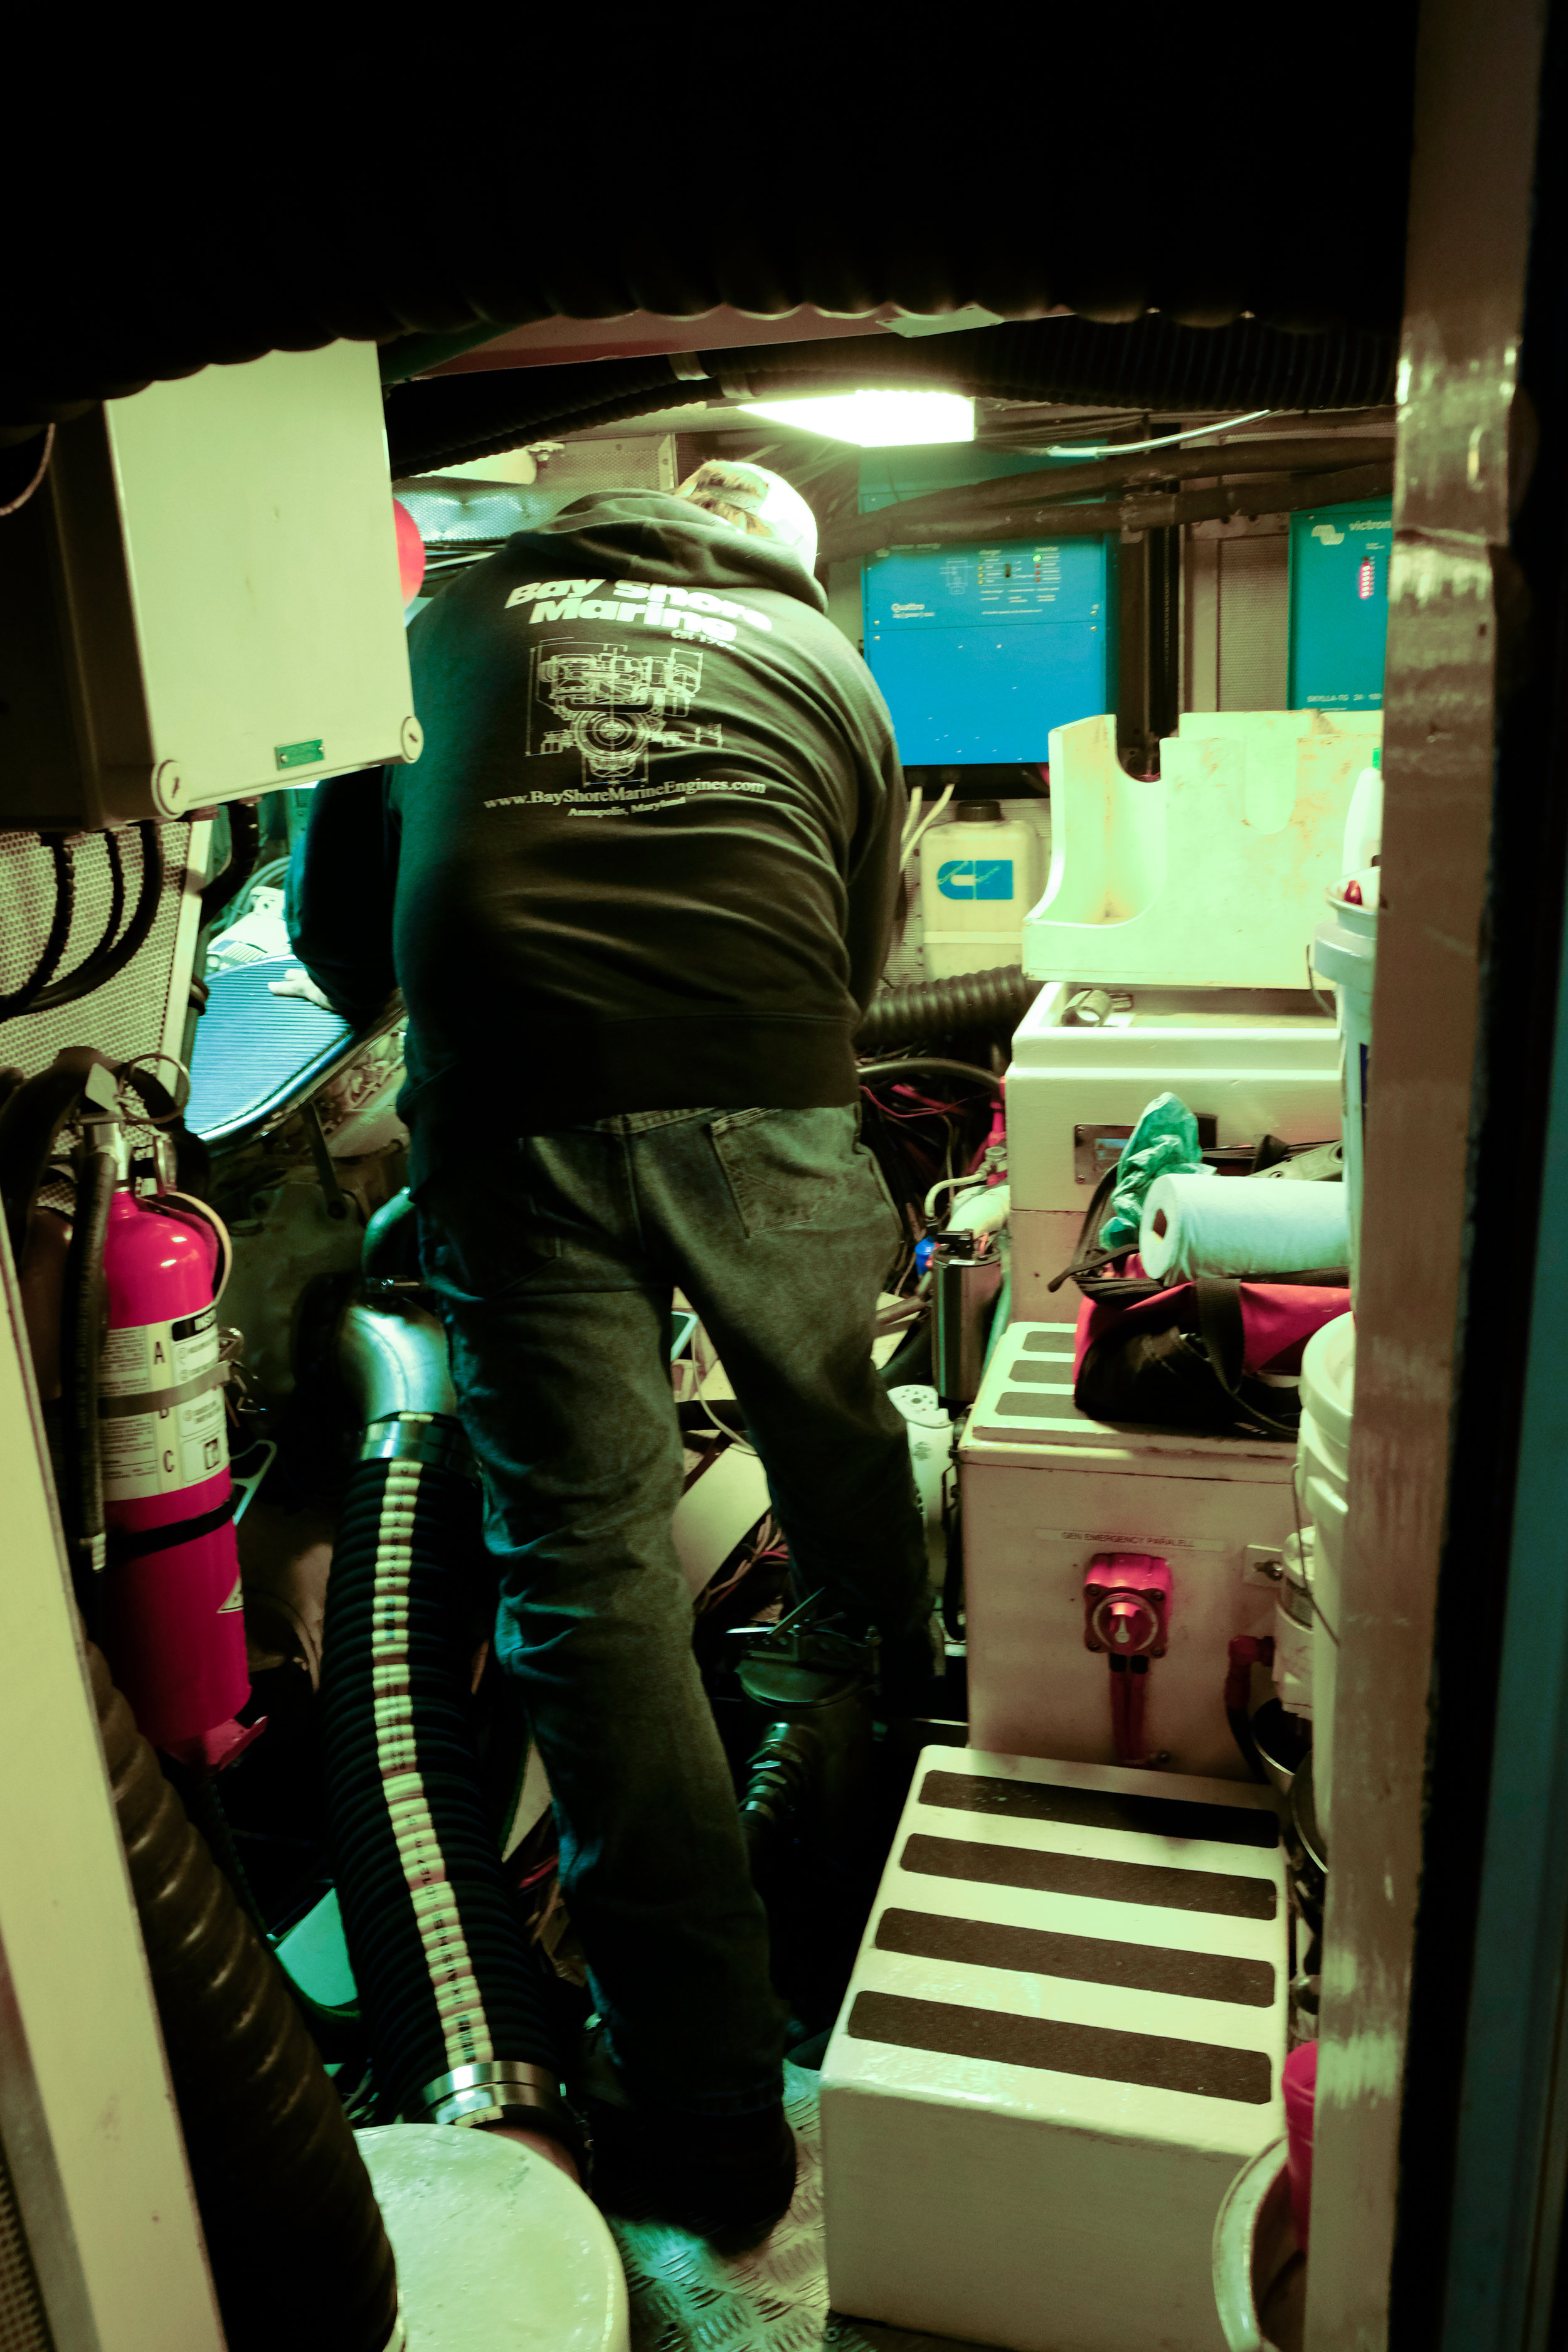 Jeff Leitch check fluids and later under way for any leaks or other abnormalities in the spacious engine room.